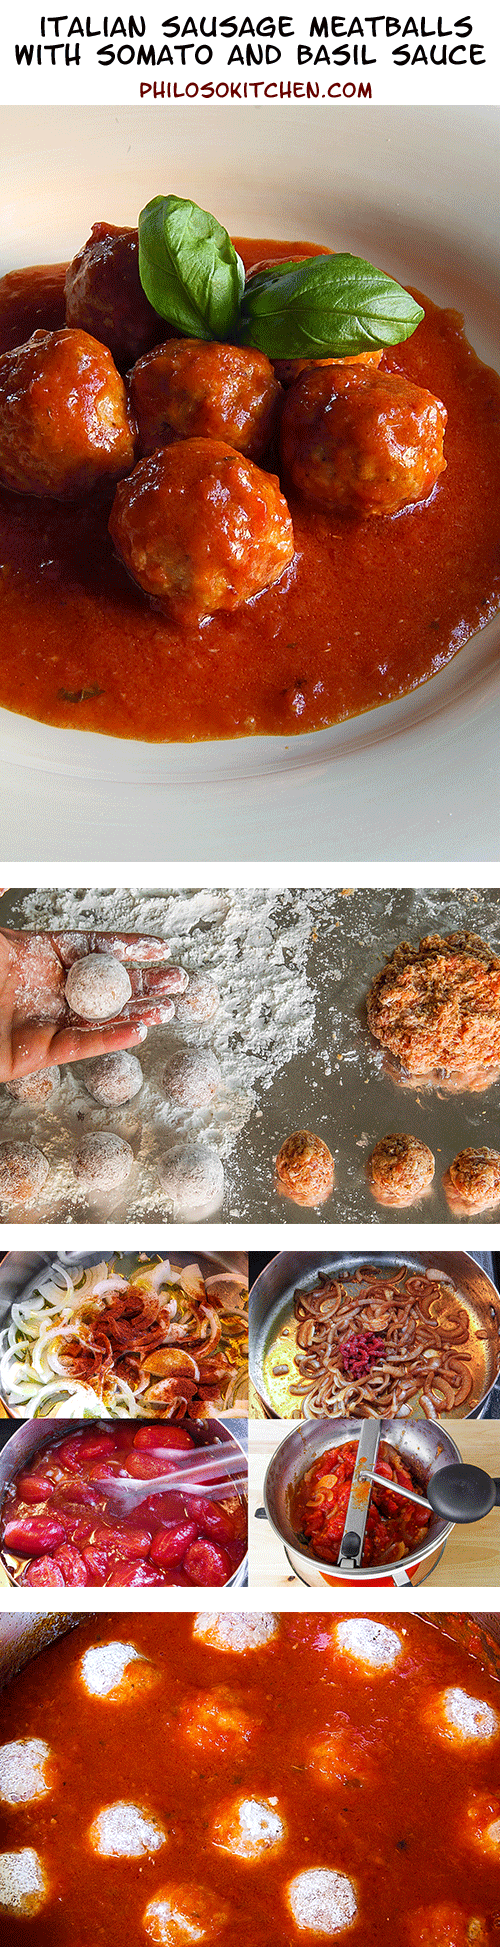 Italian sausage meatballs with tomato and basil sauce